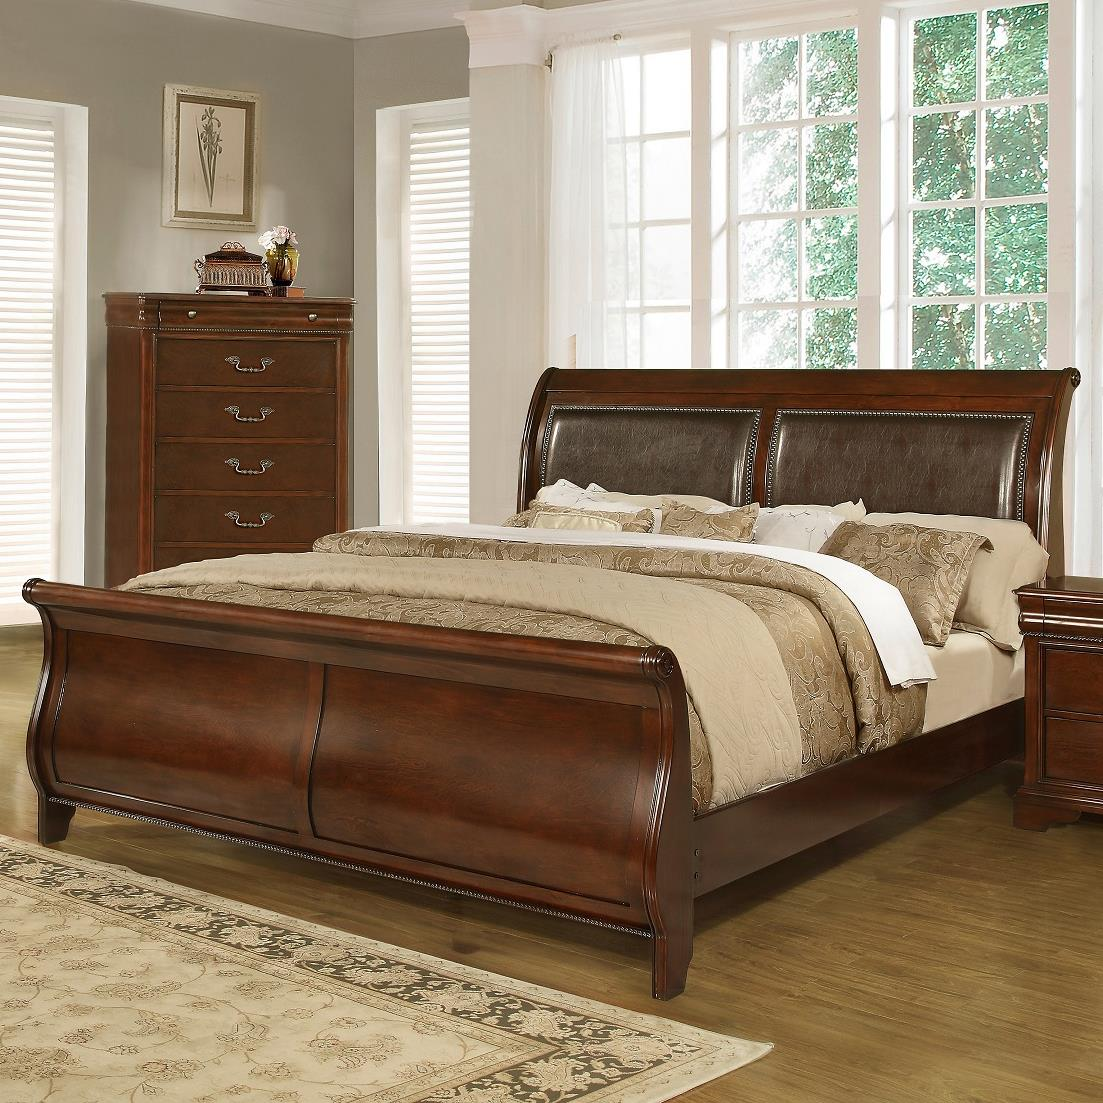 Lifestyle C4116a Traditional King Sleigh Bed Furniture